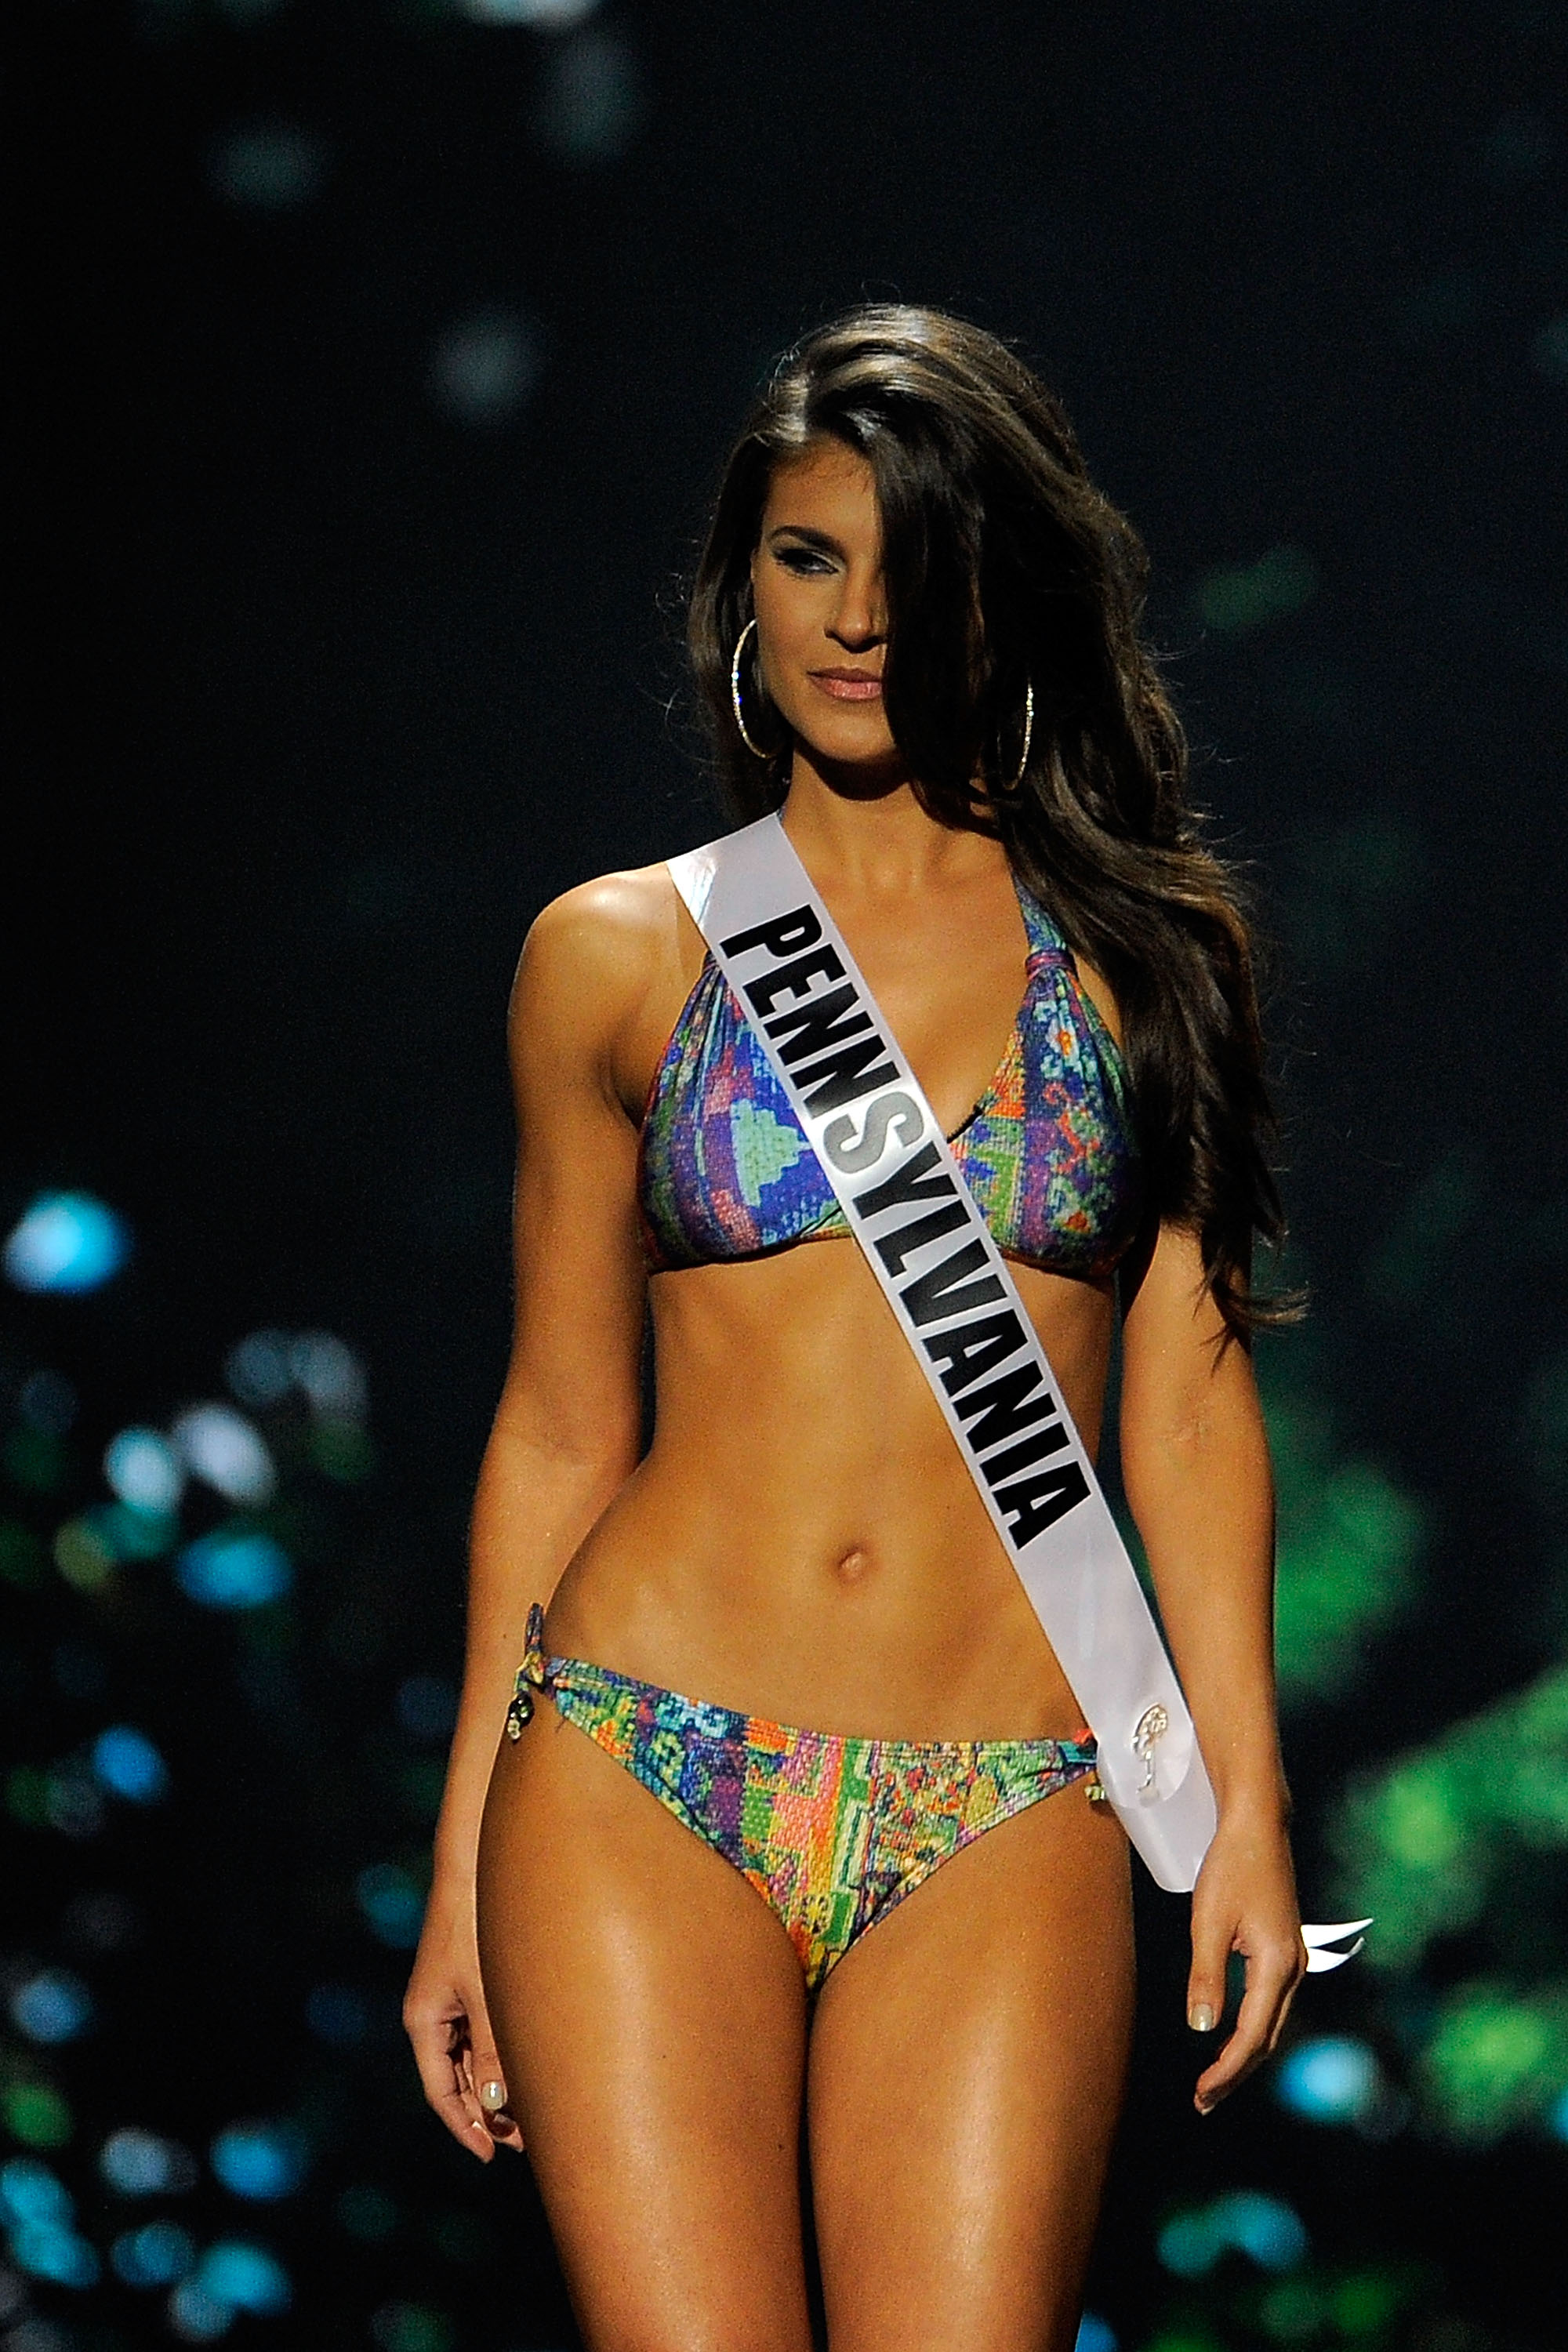 Miss Pennsylvania USA Valerie Gatto attends the 2014 Miss USA preliminary competition in Baton Rouge, La., on June 4, 2014.